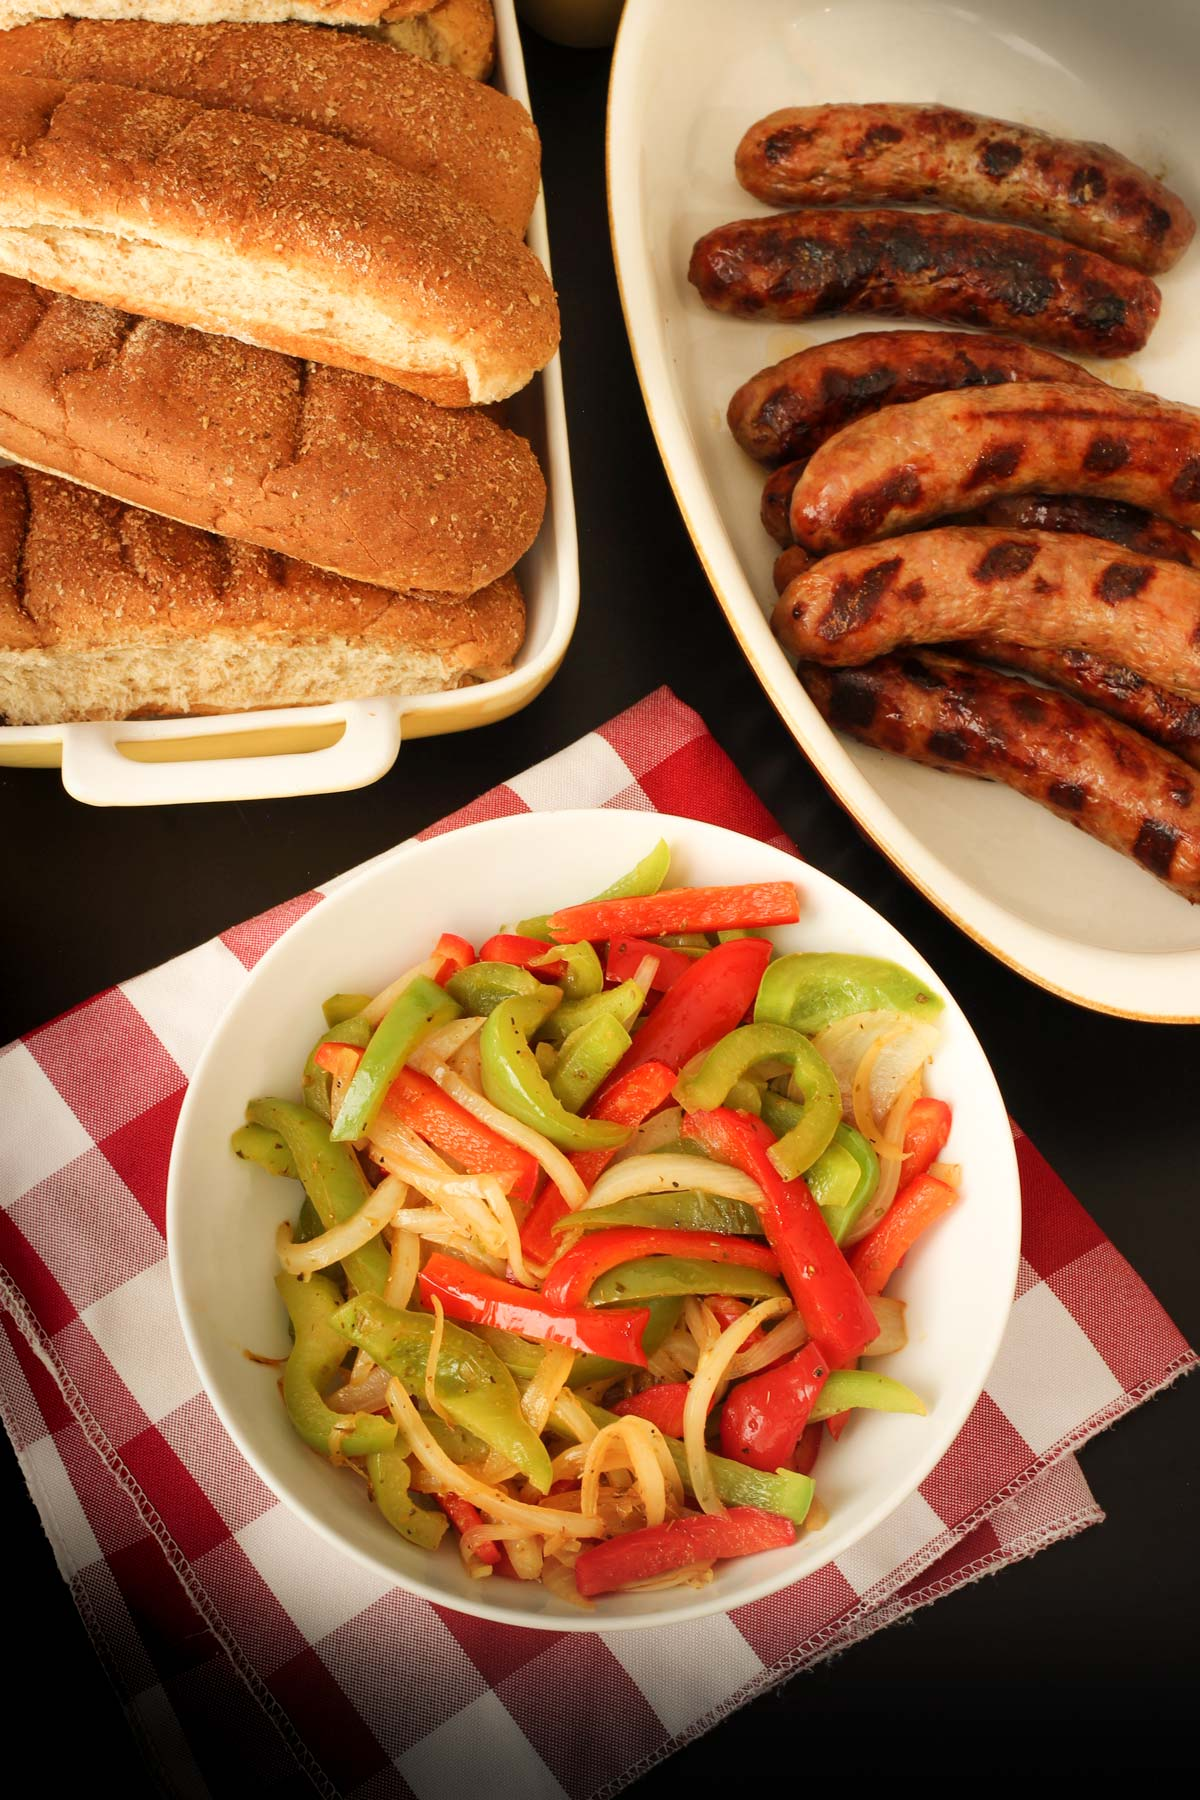 bowl of sauteed peppers and onions on buffet table with hot dog buns and brats.